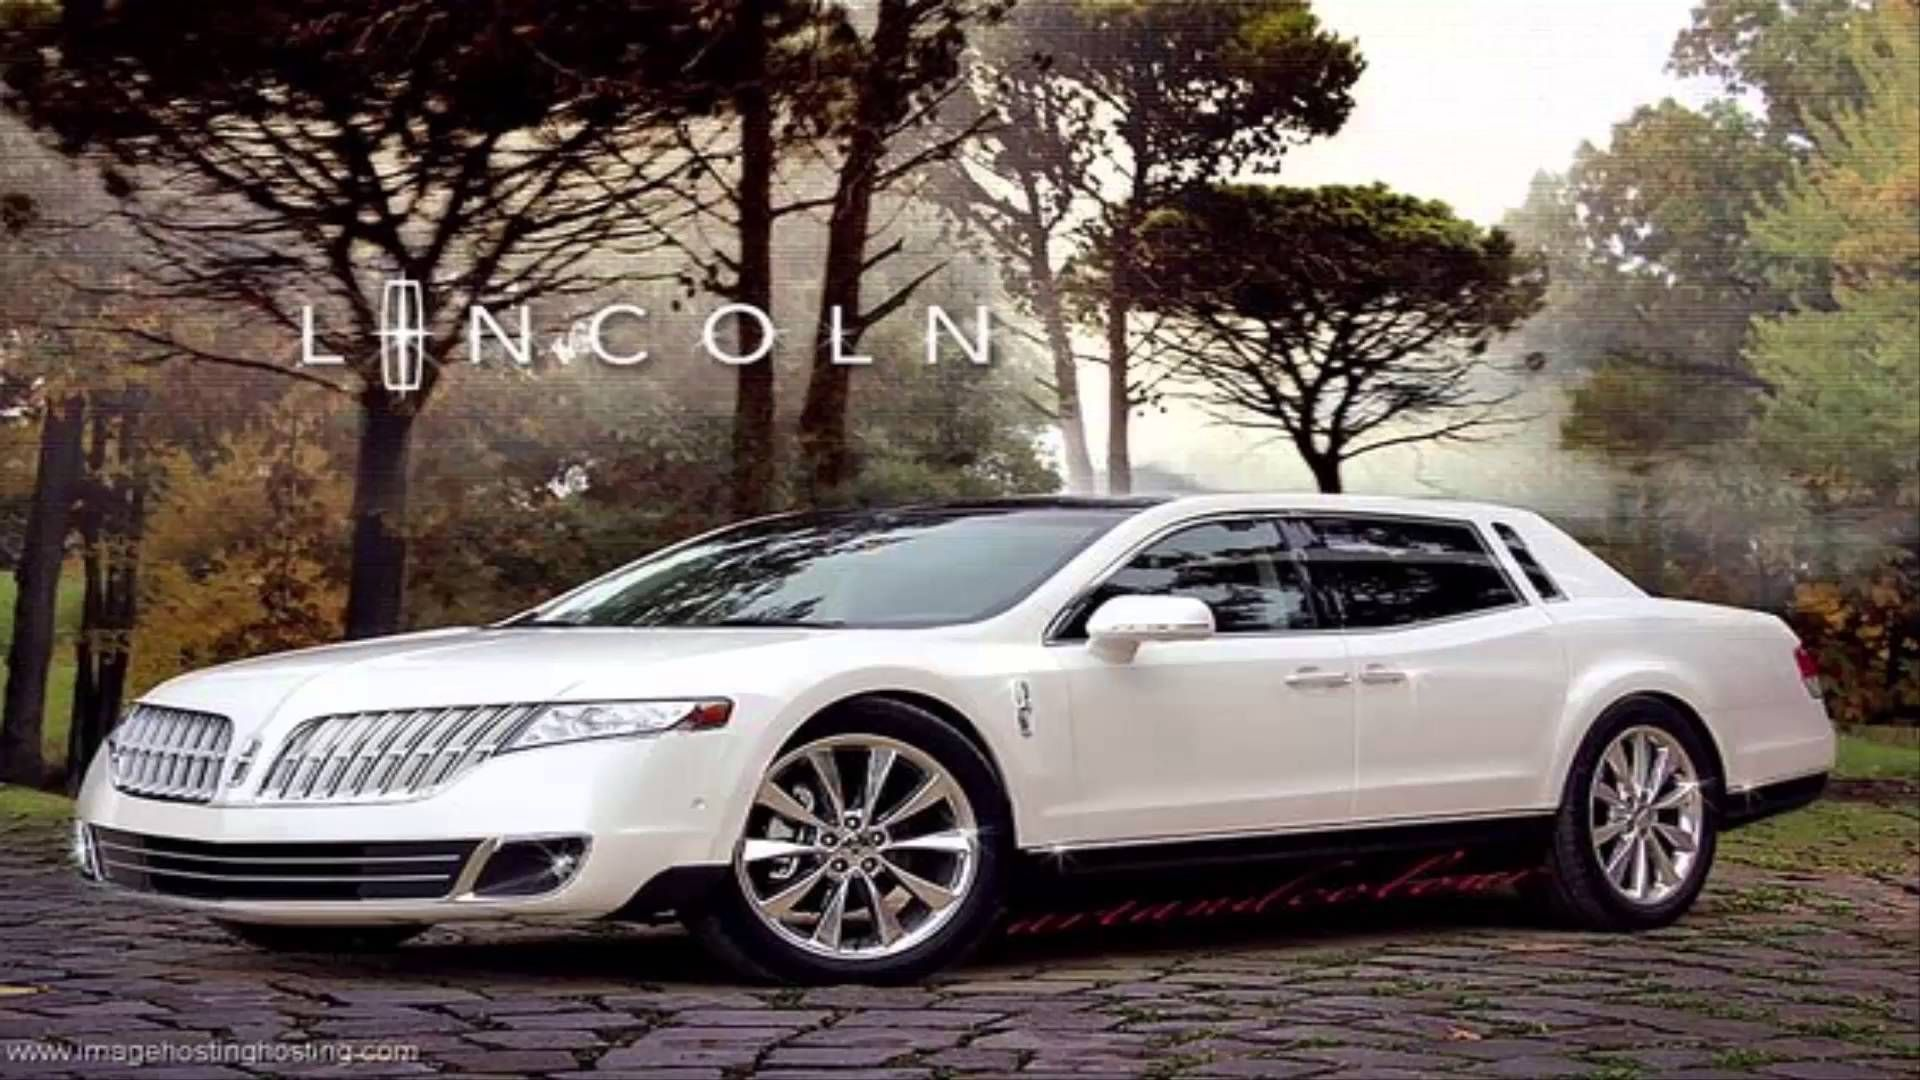 2016 Lincoln Town Car >> Pin On Kkk